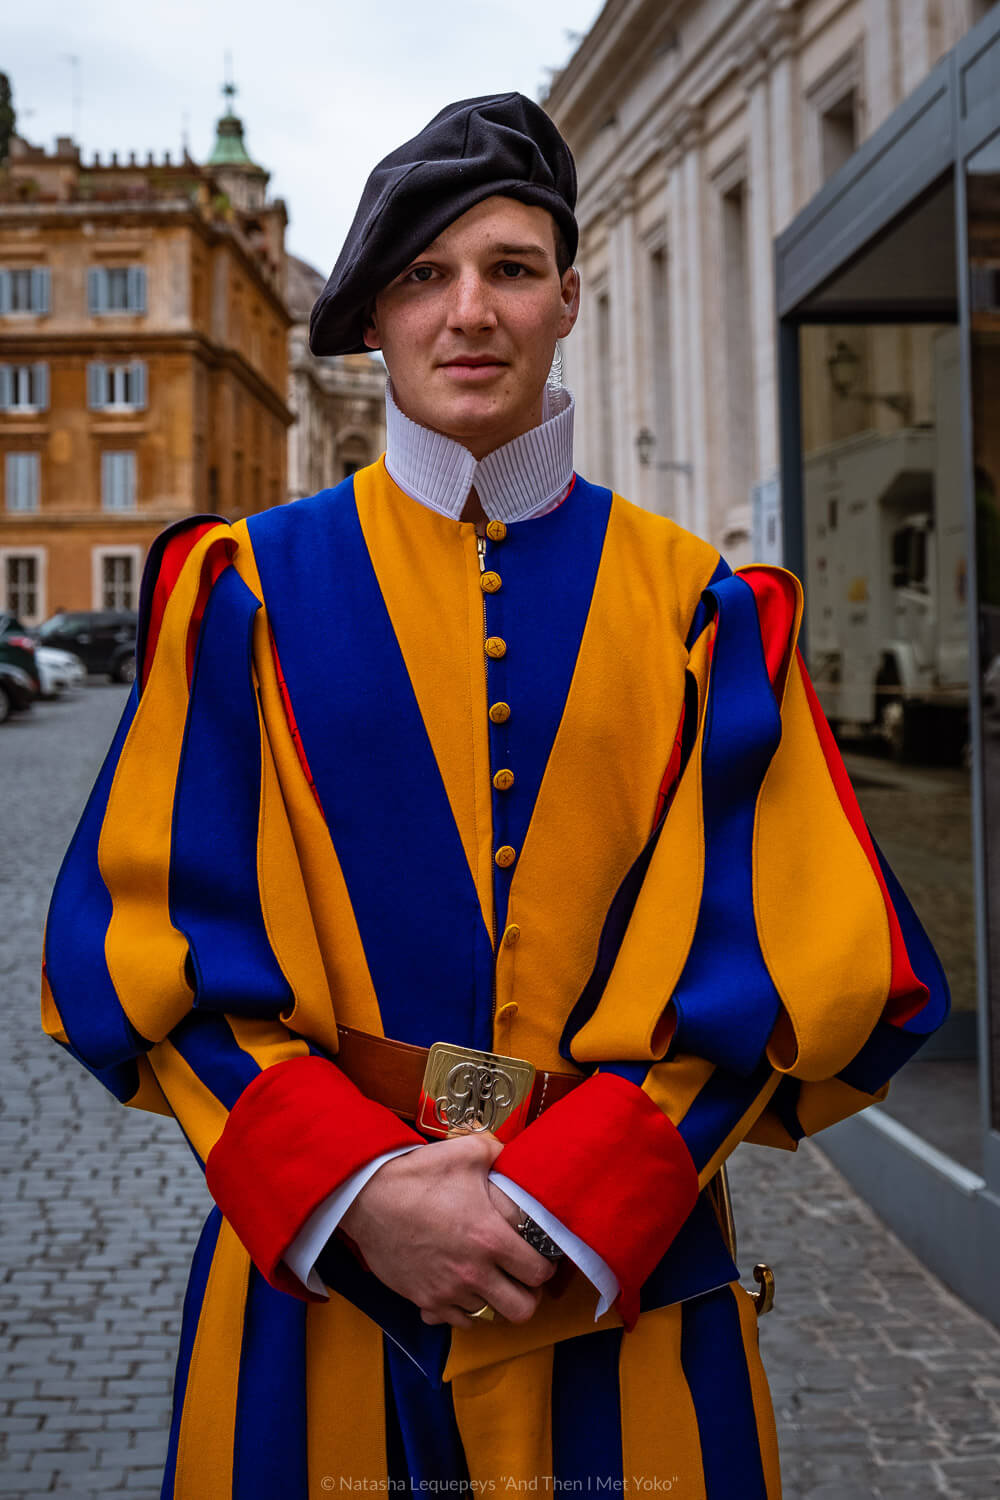 """A Swiss Guard at the Vatican. Travel photography and guide by © Natasha Lequepeys for """"And Then I Met Yoko"""". #rome #italy #travelblog #travelphotography"""